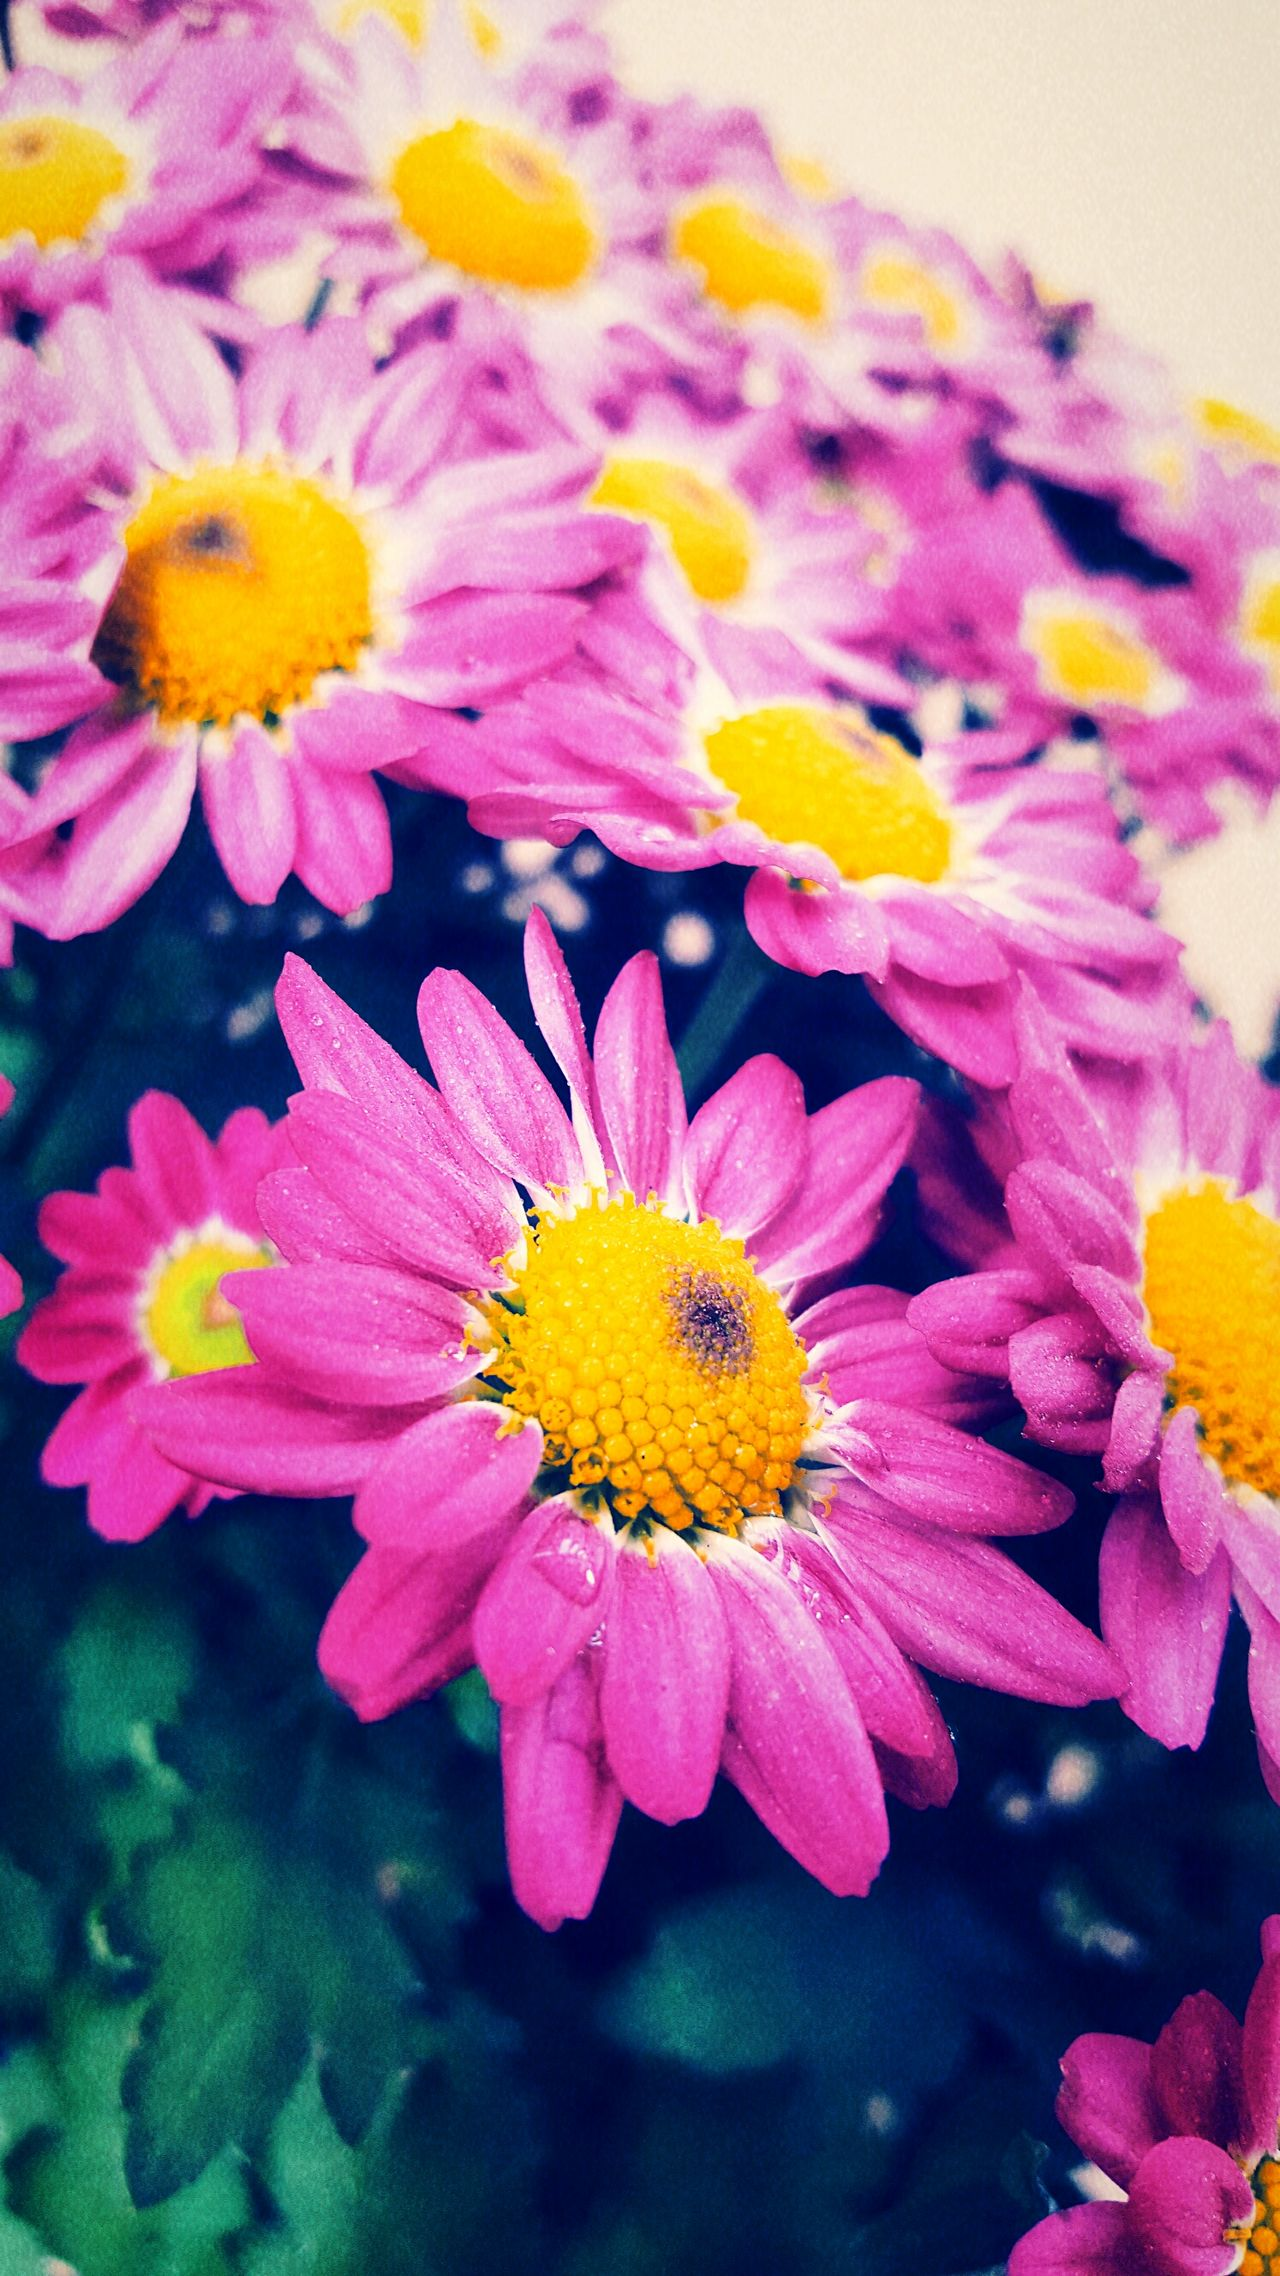 Pink daisy Daisy Flower Pink Purple My Point Of View Fresh On Eyeem  Eyeem Photography The Week Of Eyeem My Capture  Check This Out Eyeem Beautiful Nature Hello World Cameron Highlands EyeEm Outdoors Outdoor Photography EyeEm Nature Lover Flowers Daisy Close Up Blooming Blossoms  Colour Of Life